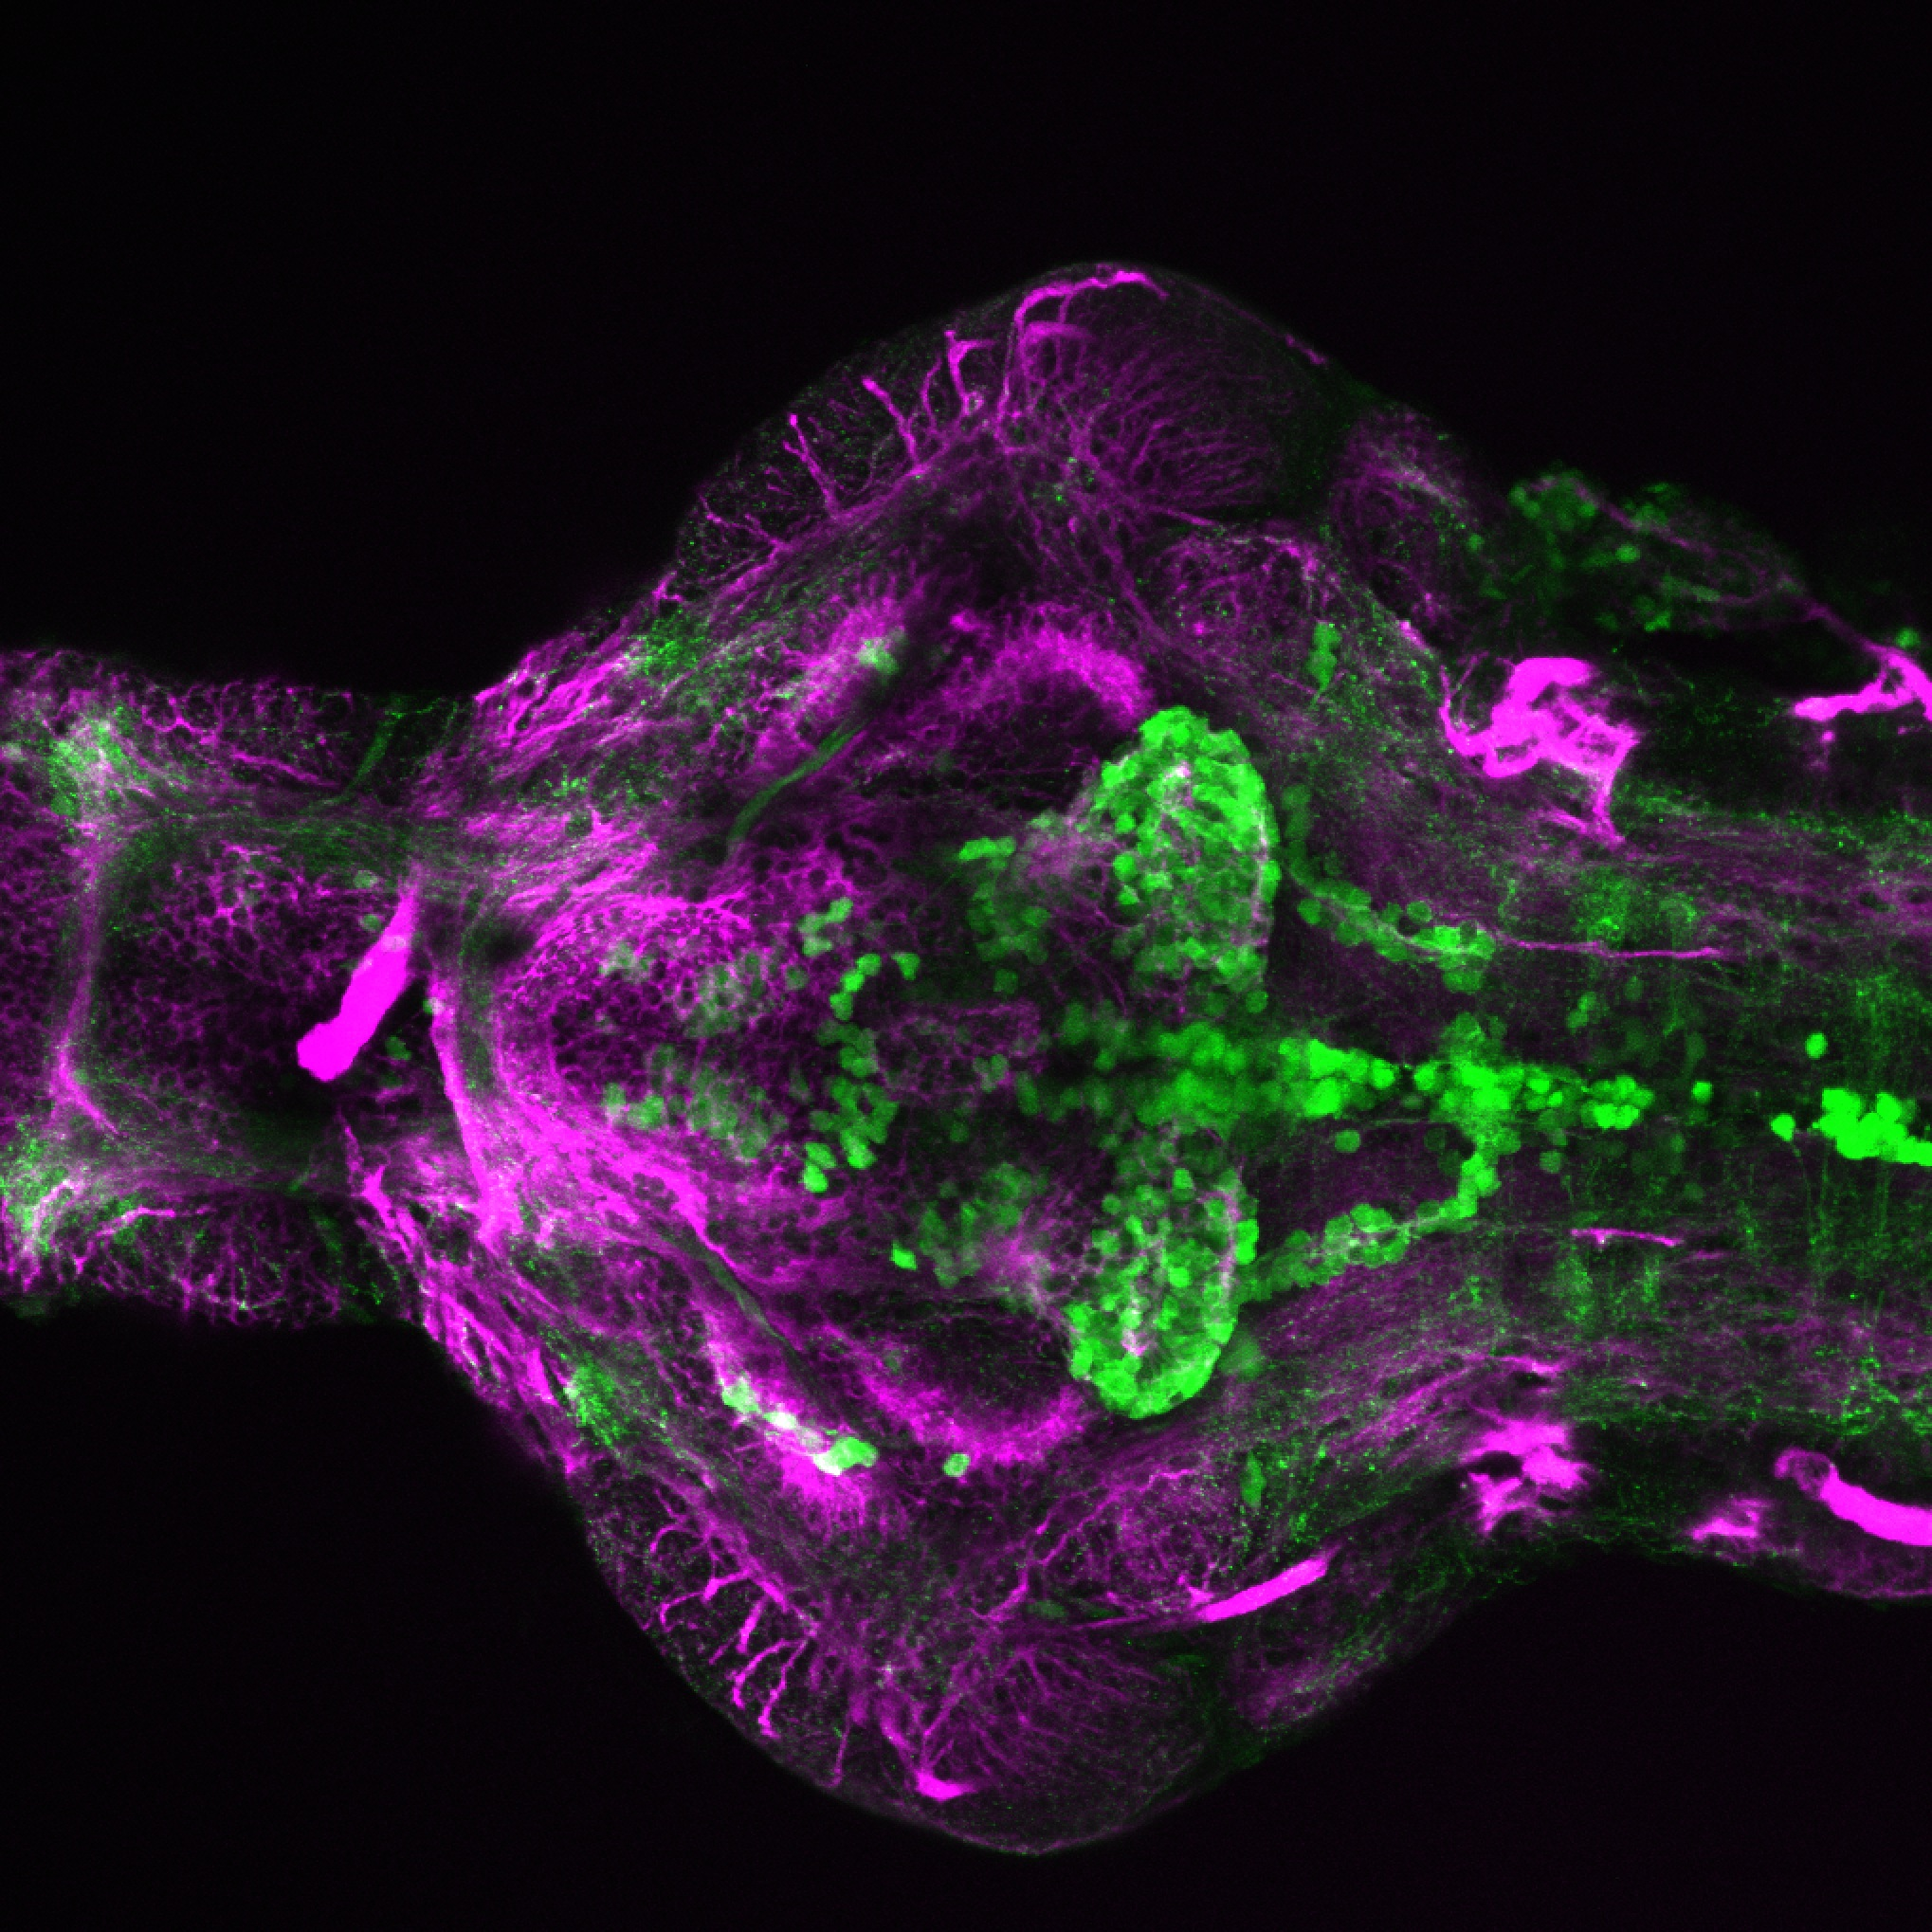 4dpf Ventral view of ETvmat2:GFP with acetylated tubulin(magenta)..